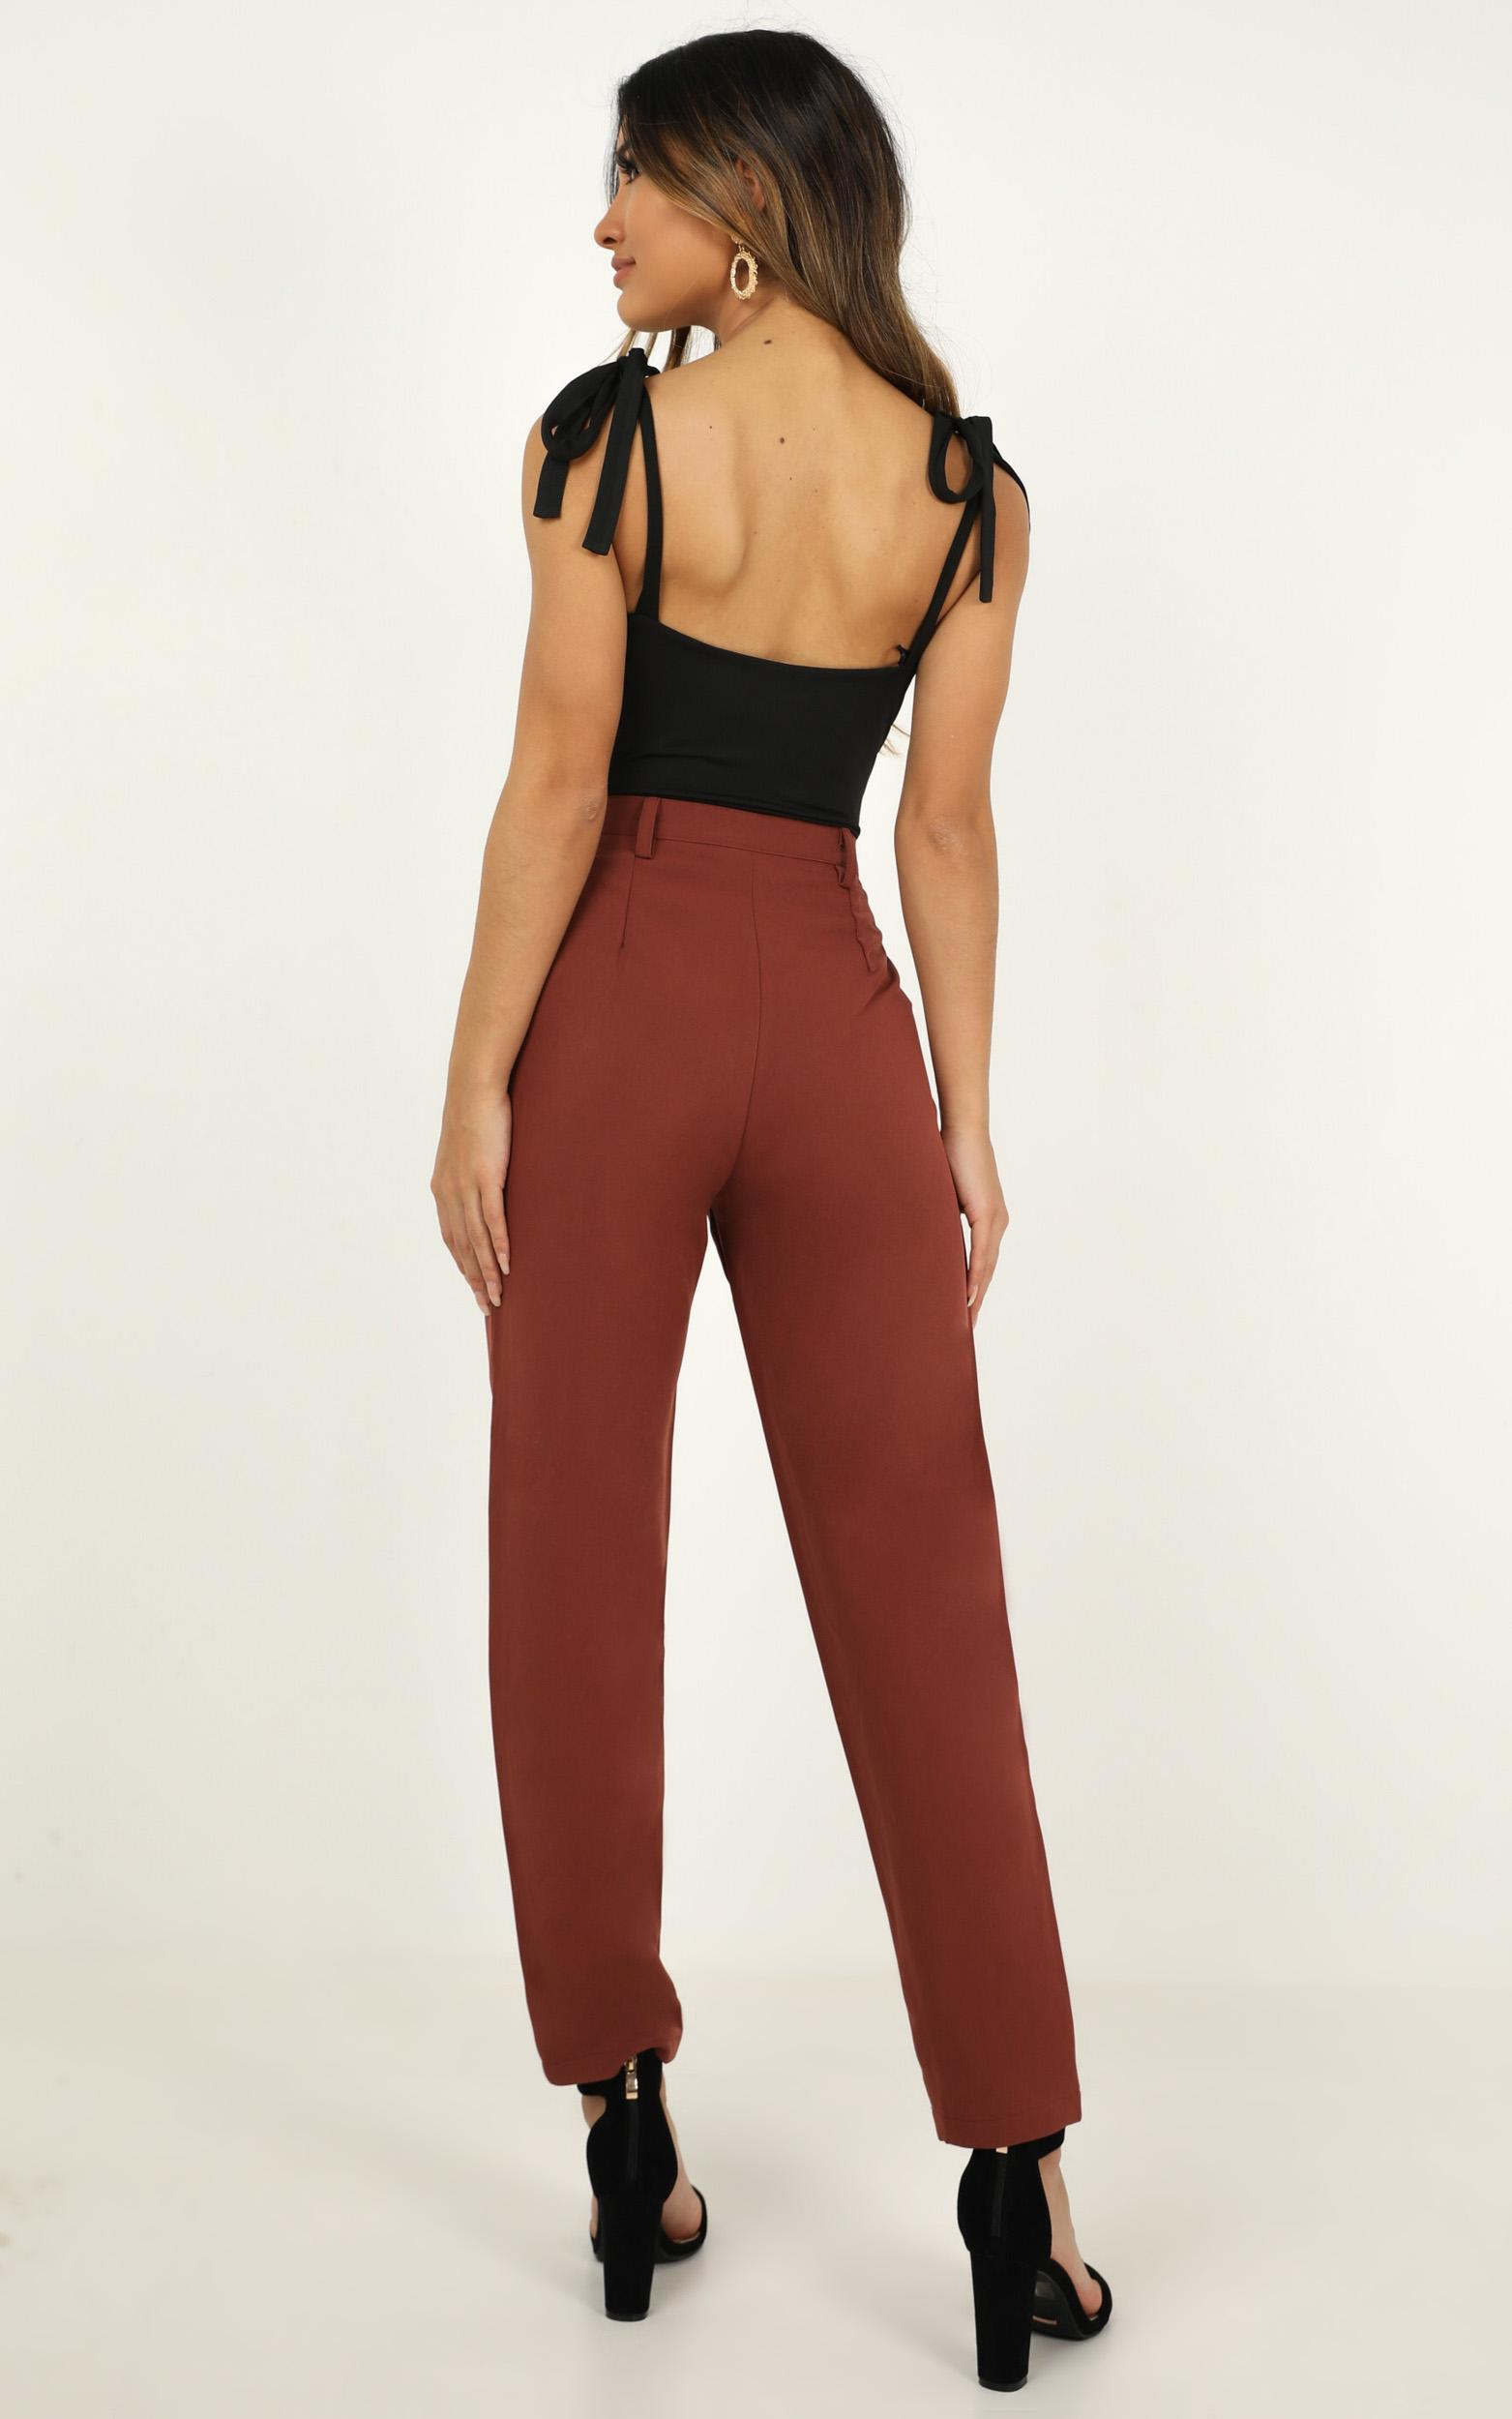 On The Other Side Pants In rust - 20 (XXXXL), Rust, hi-res image number null